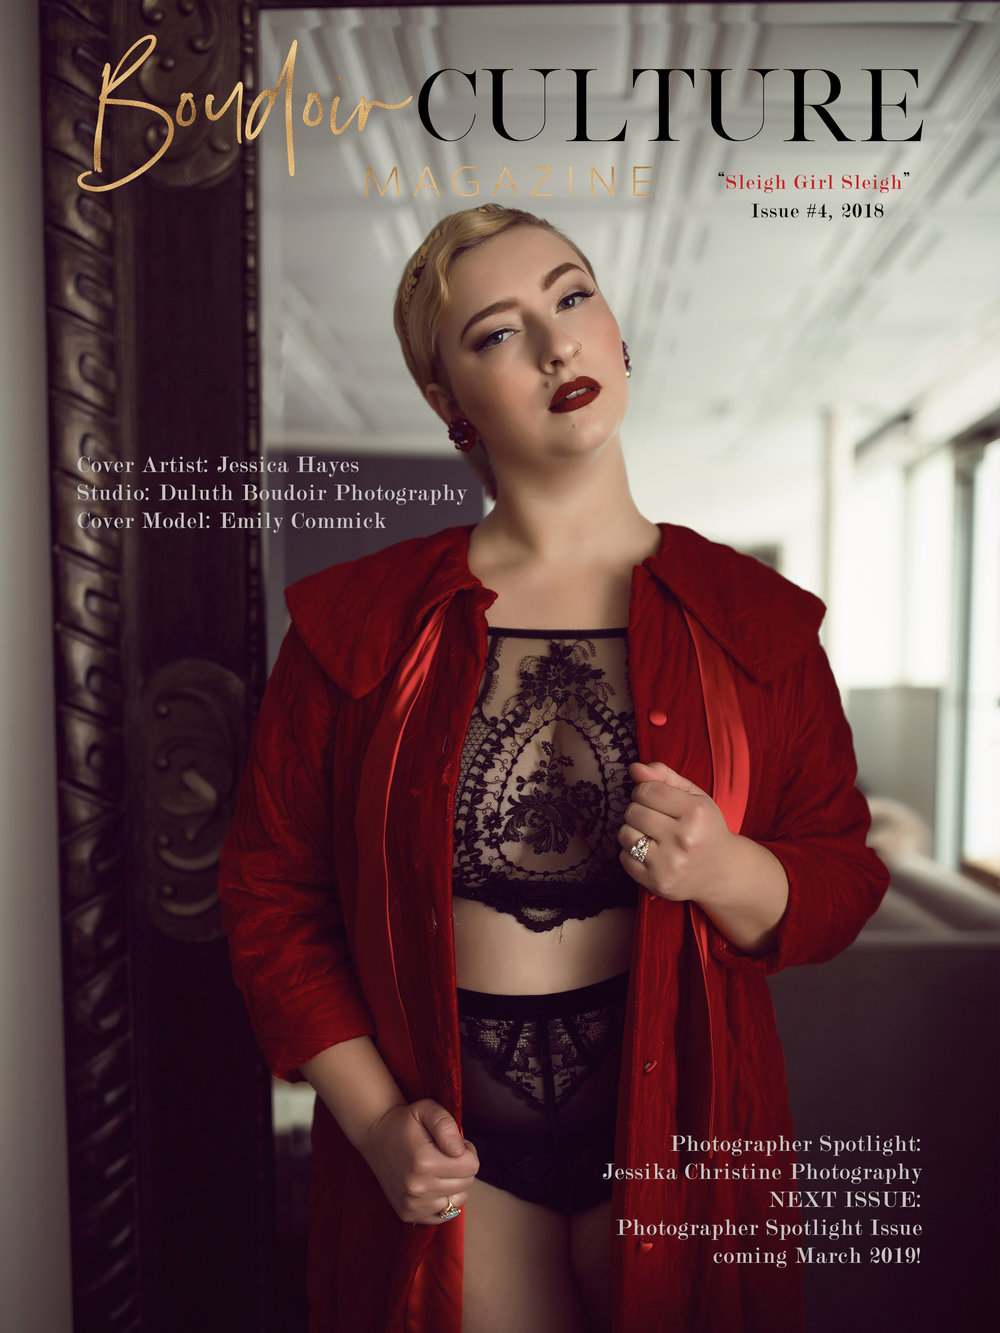 Boudoir Culture Magazine Cover of Duluth Boudoir Photography by Mad Chicken Studio